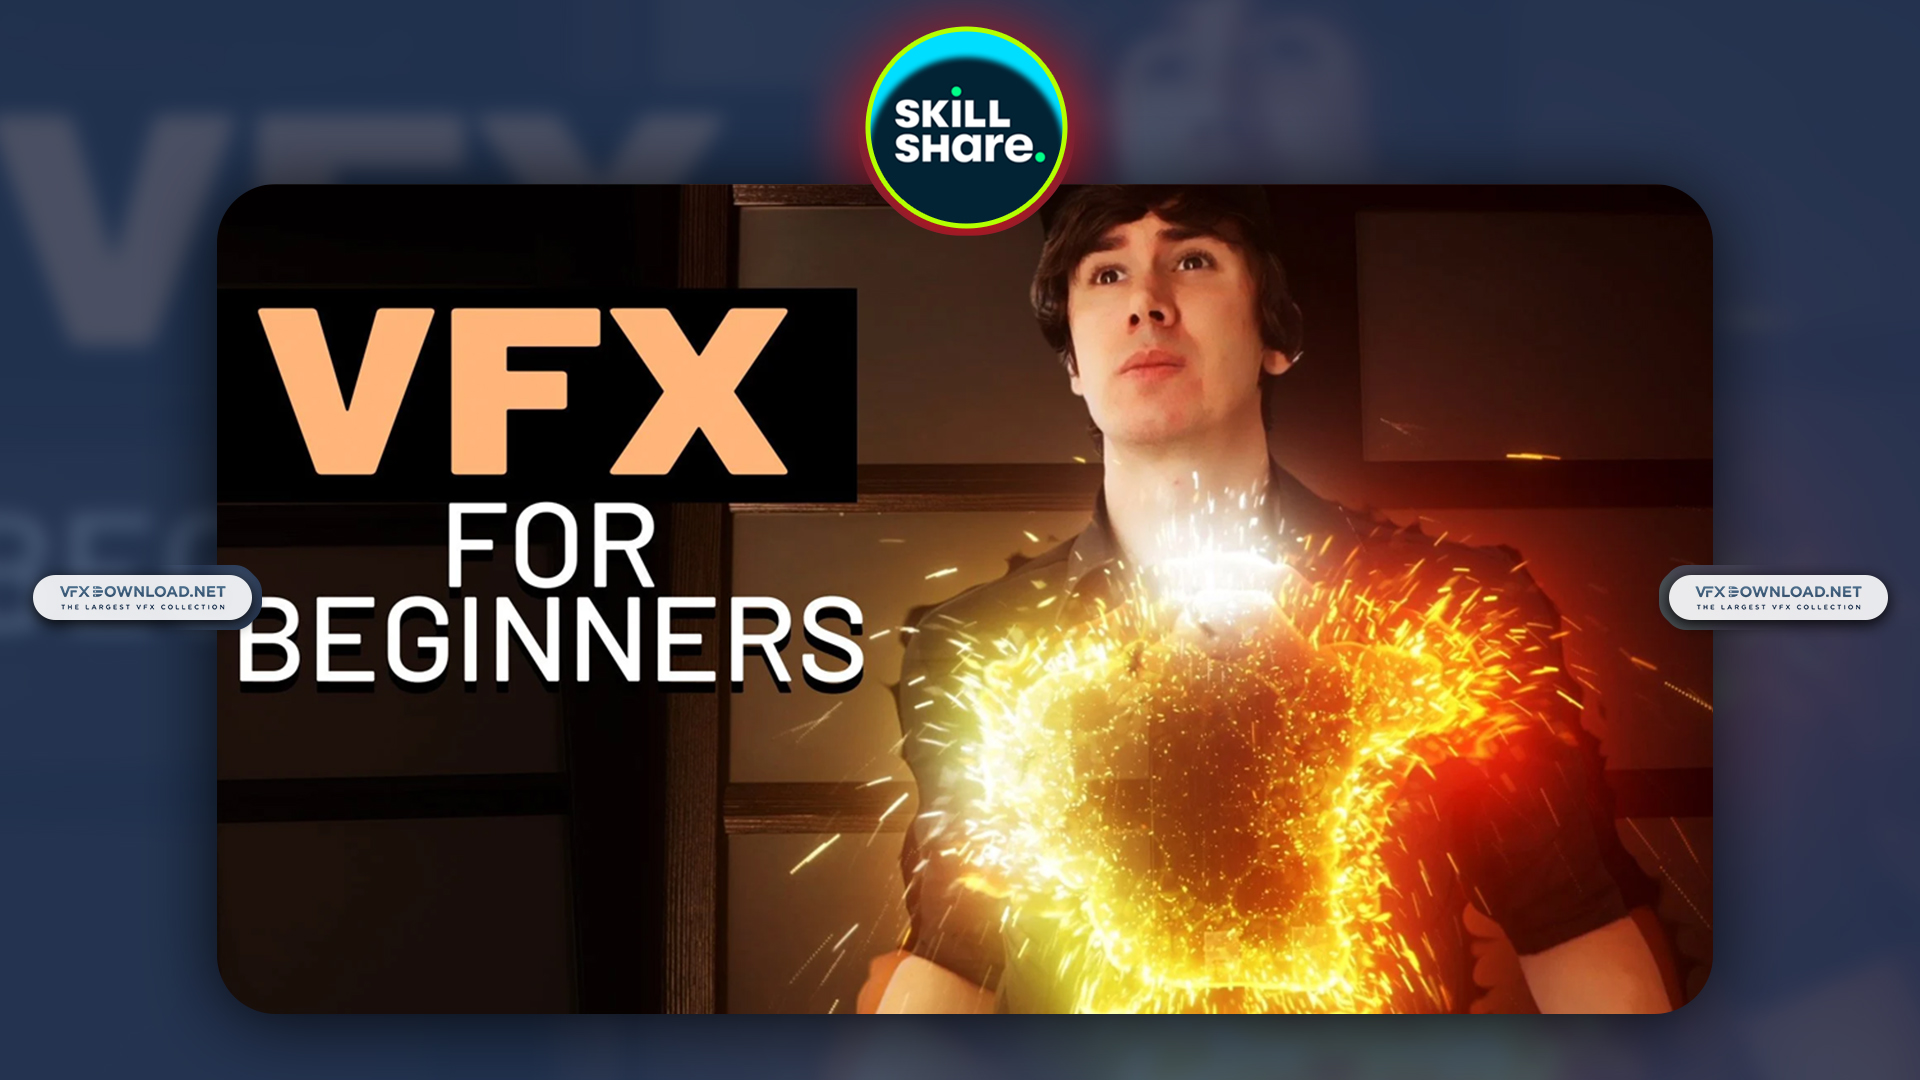 Loki VFX for Beginners Using After Effects By M Jake